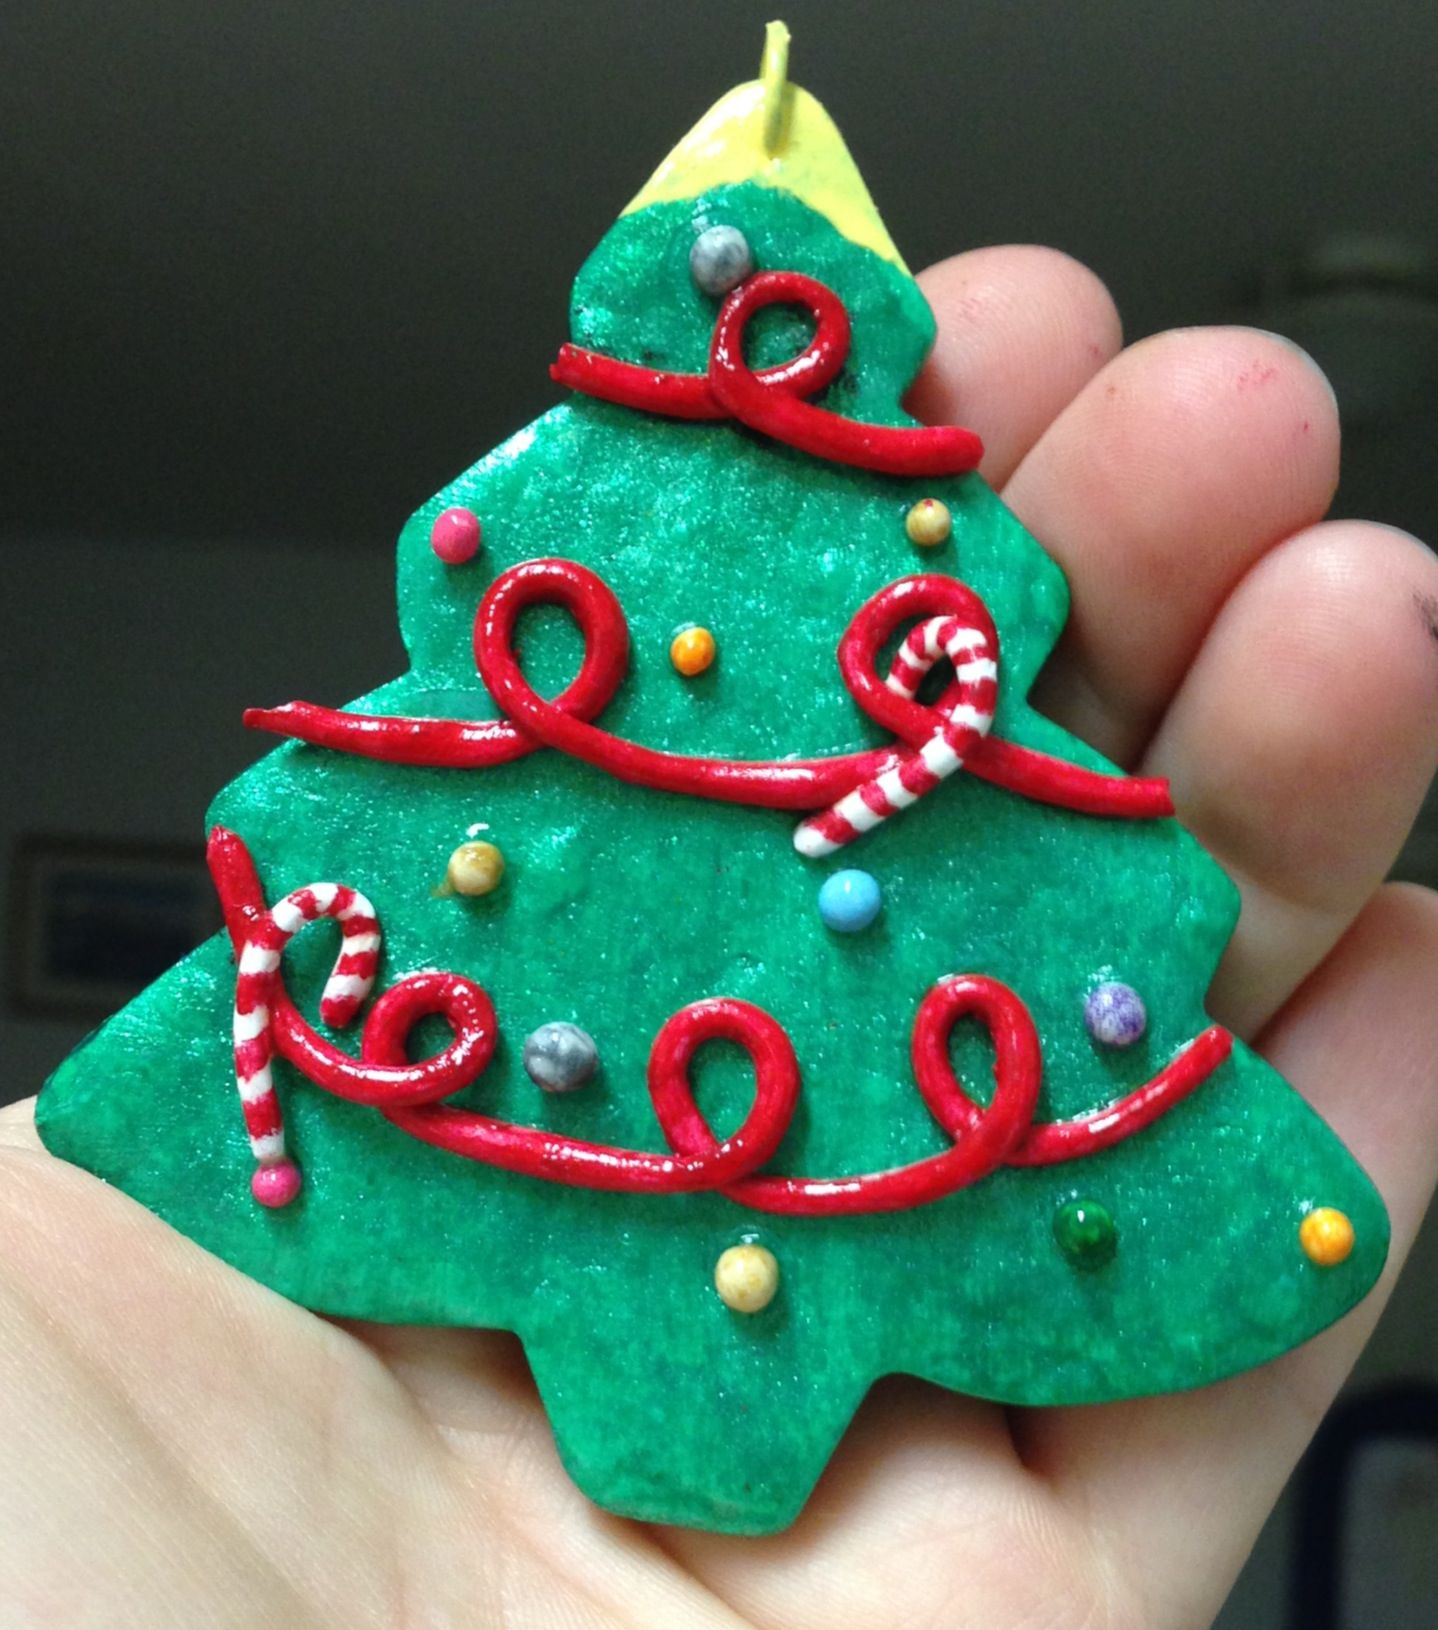 Fun To Make Homemade Christmas Ornaments Made With Oven Bake Clay Acrylic Paint And Ar Clay Christmas Decorations Easy Christmas Gifts Polymer Clay Christmas